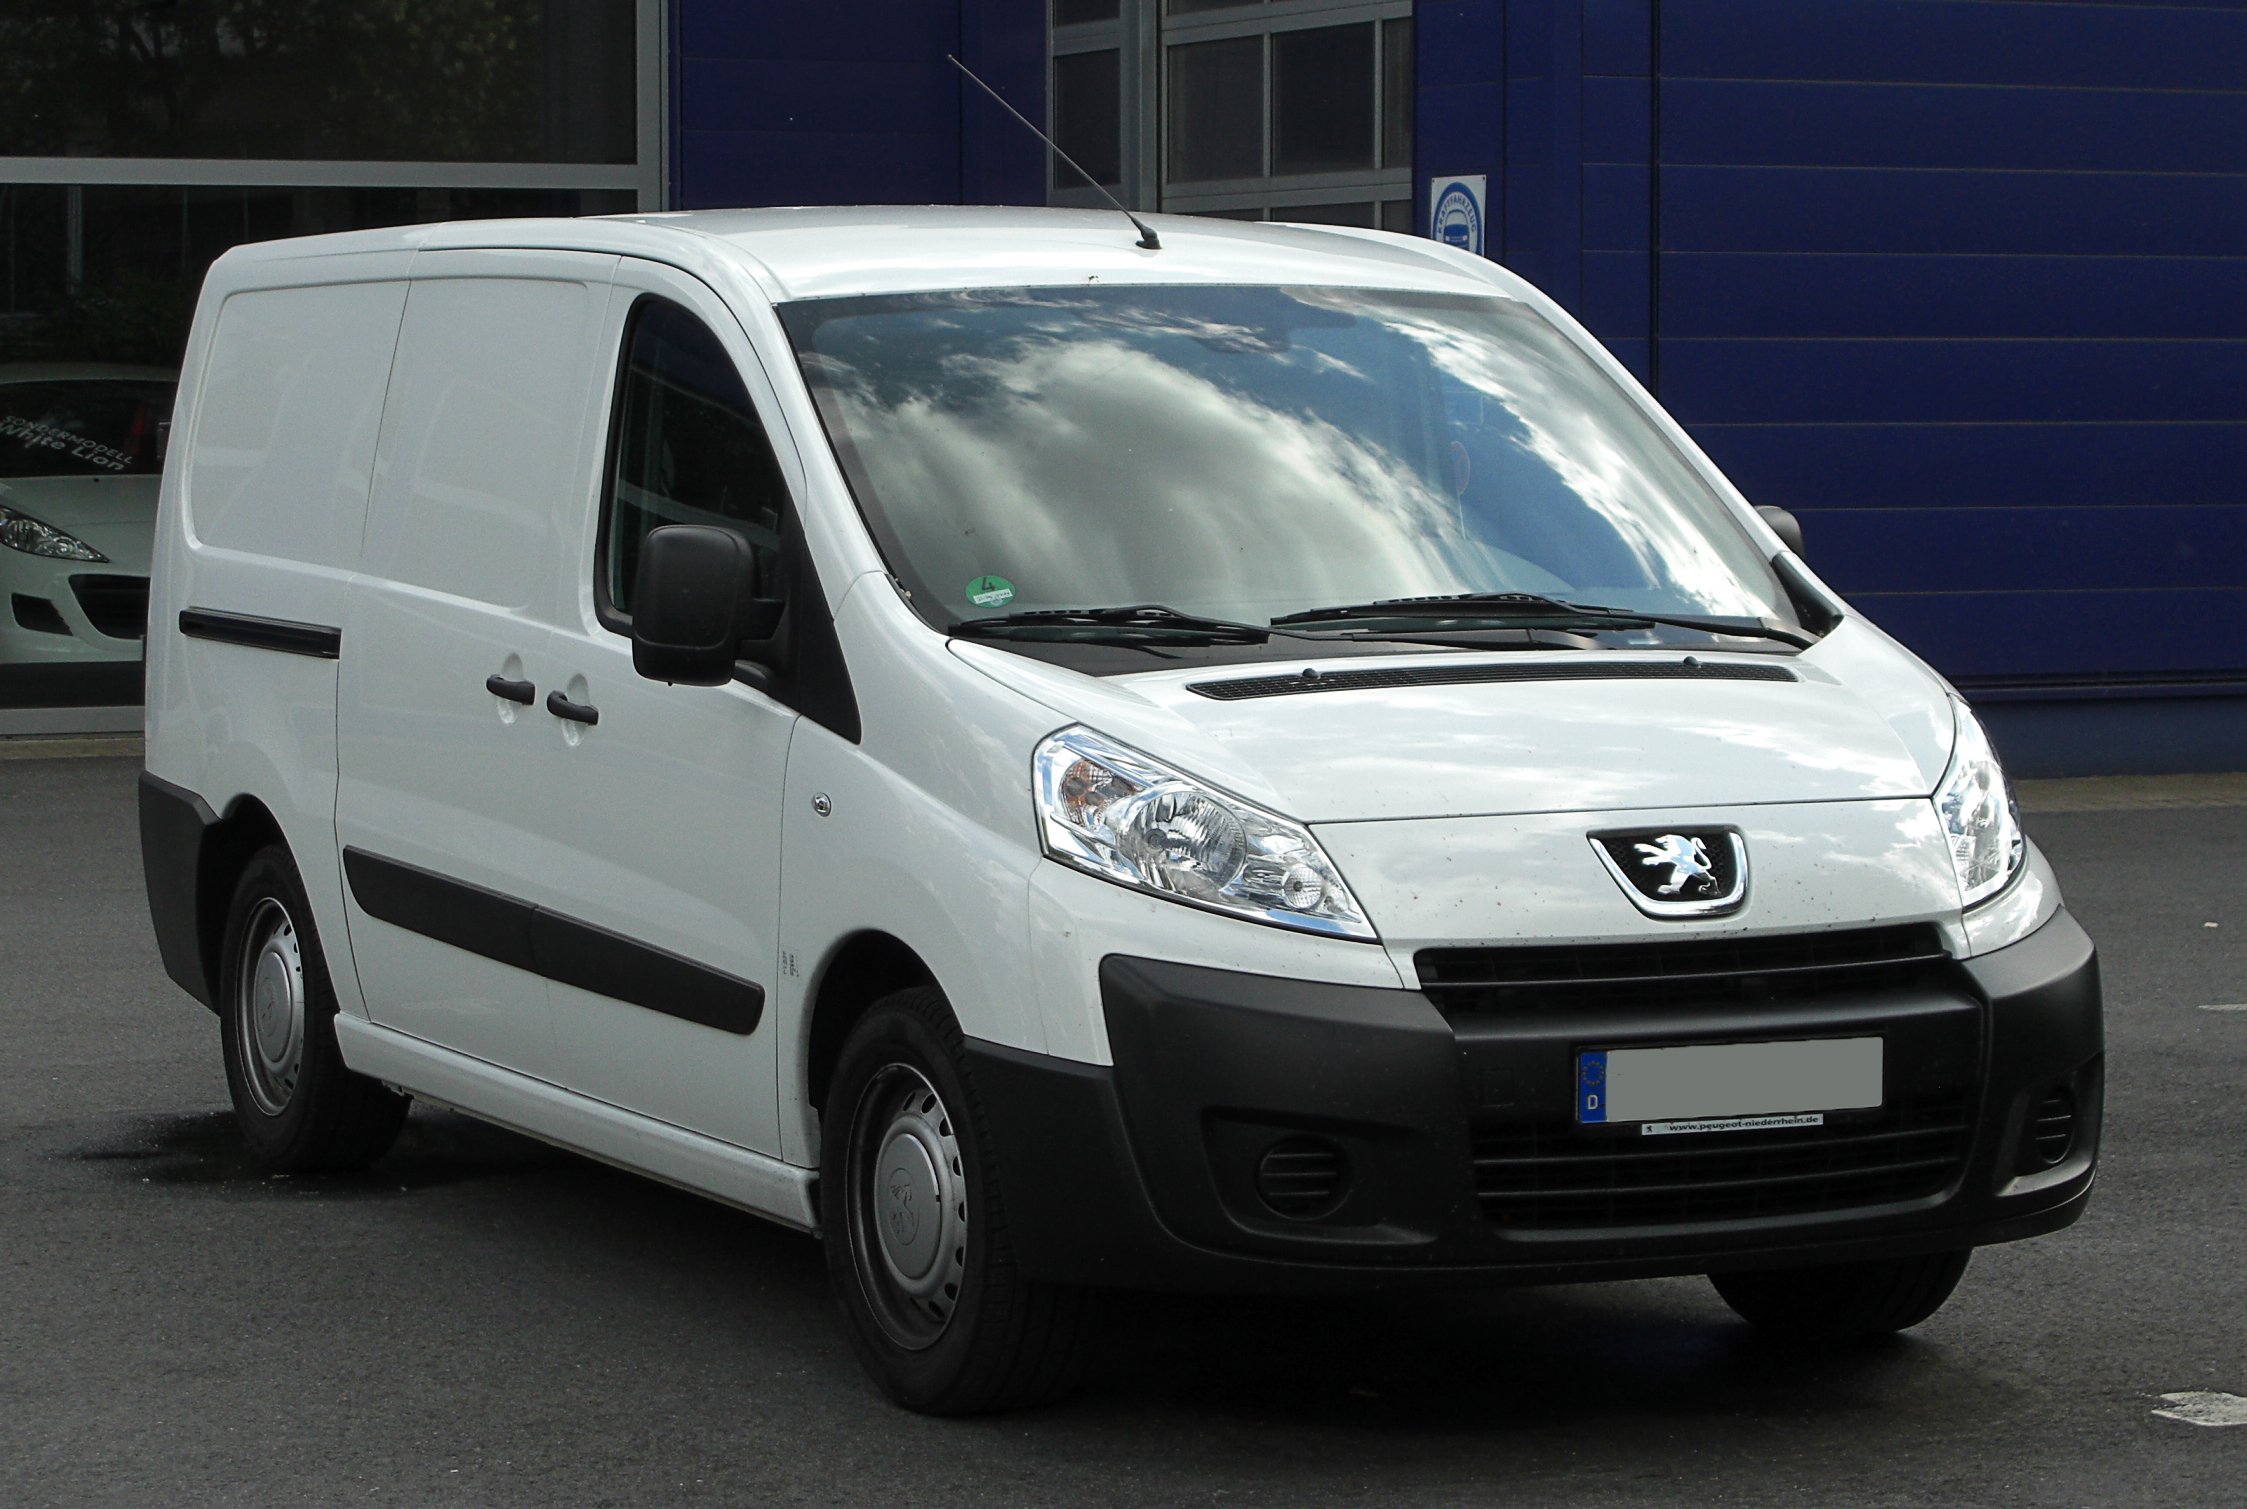 2007 peugeot expert ii 2 pictures information and specs auto. Black Bedroom Furniture Sets. Home Design Ideas